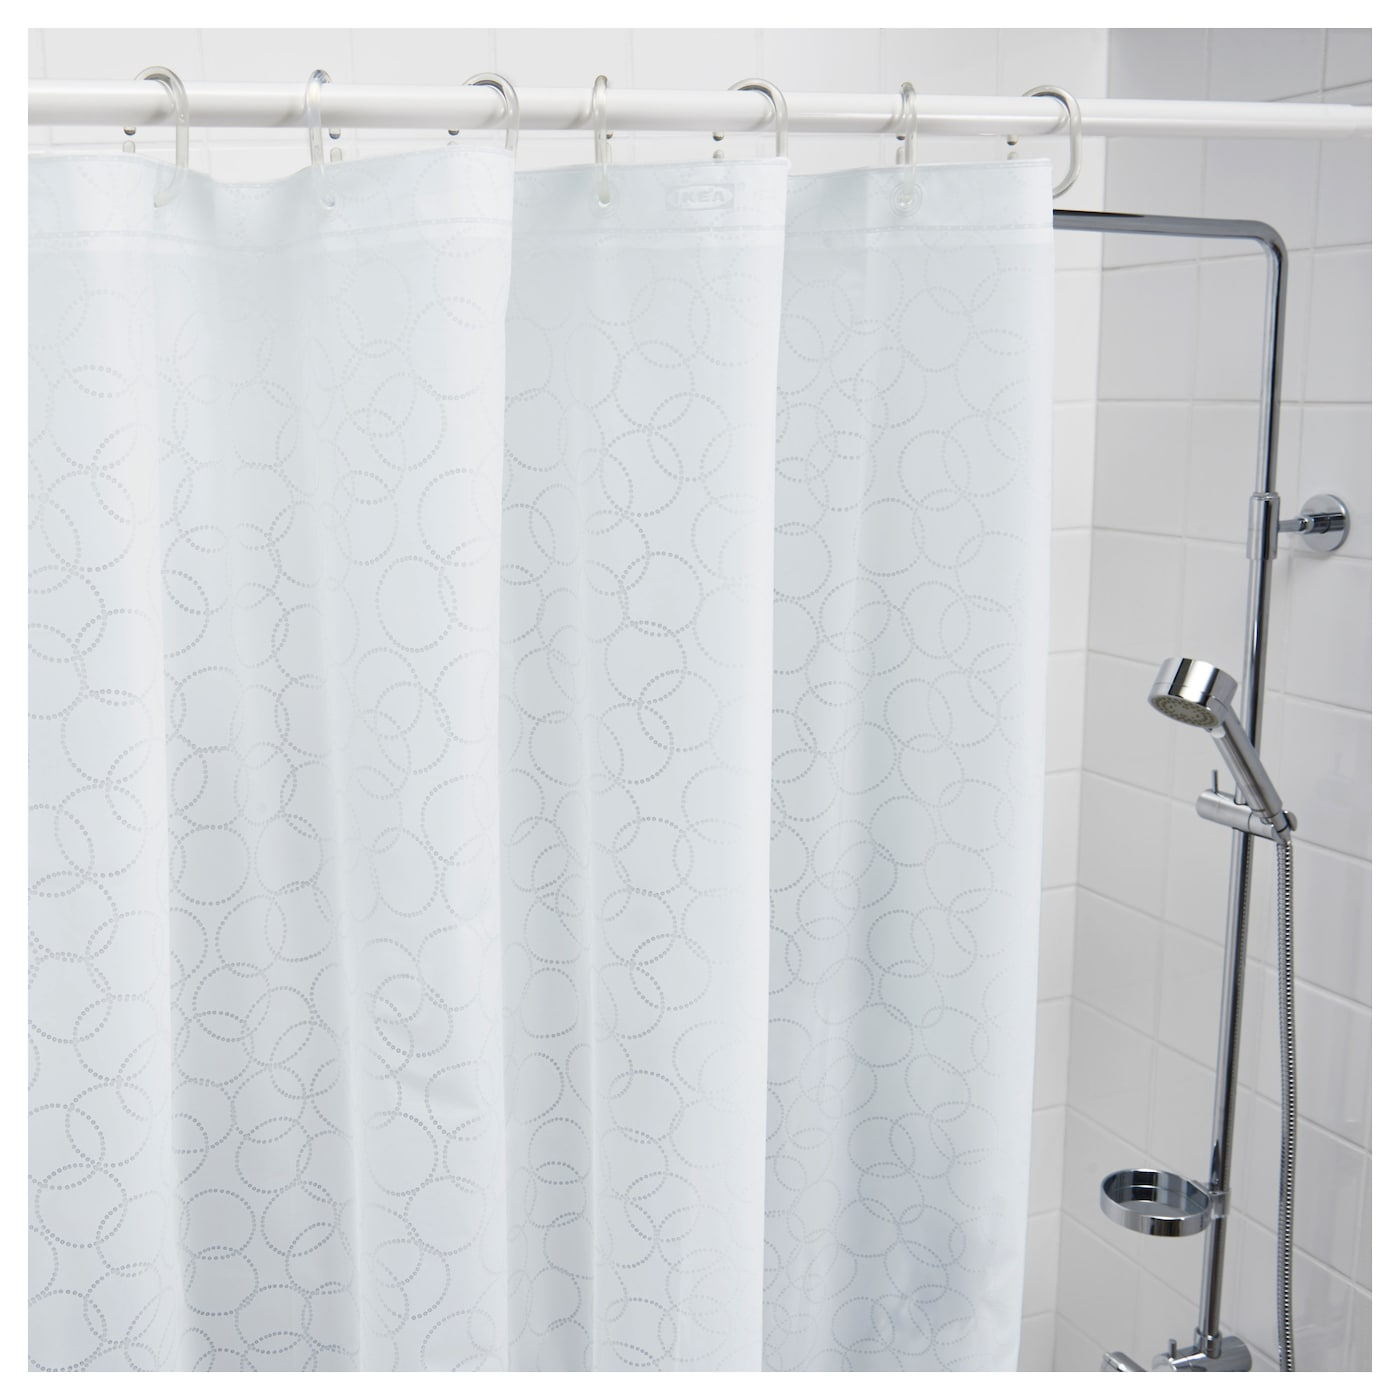 IKEA INNAREN shower curtain Can be easily cut to the desired length.